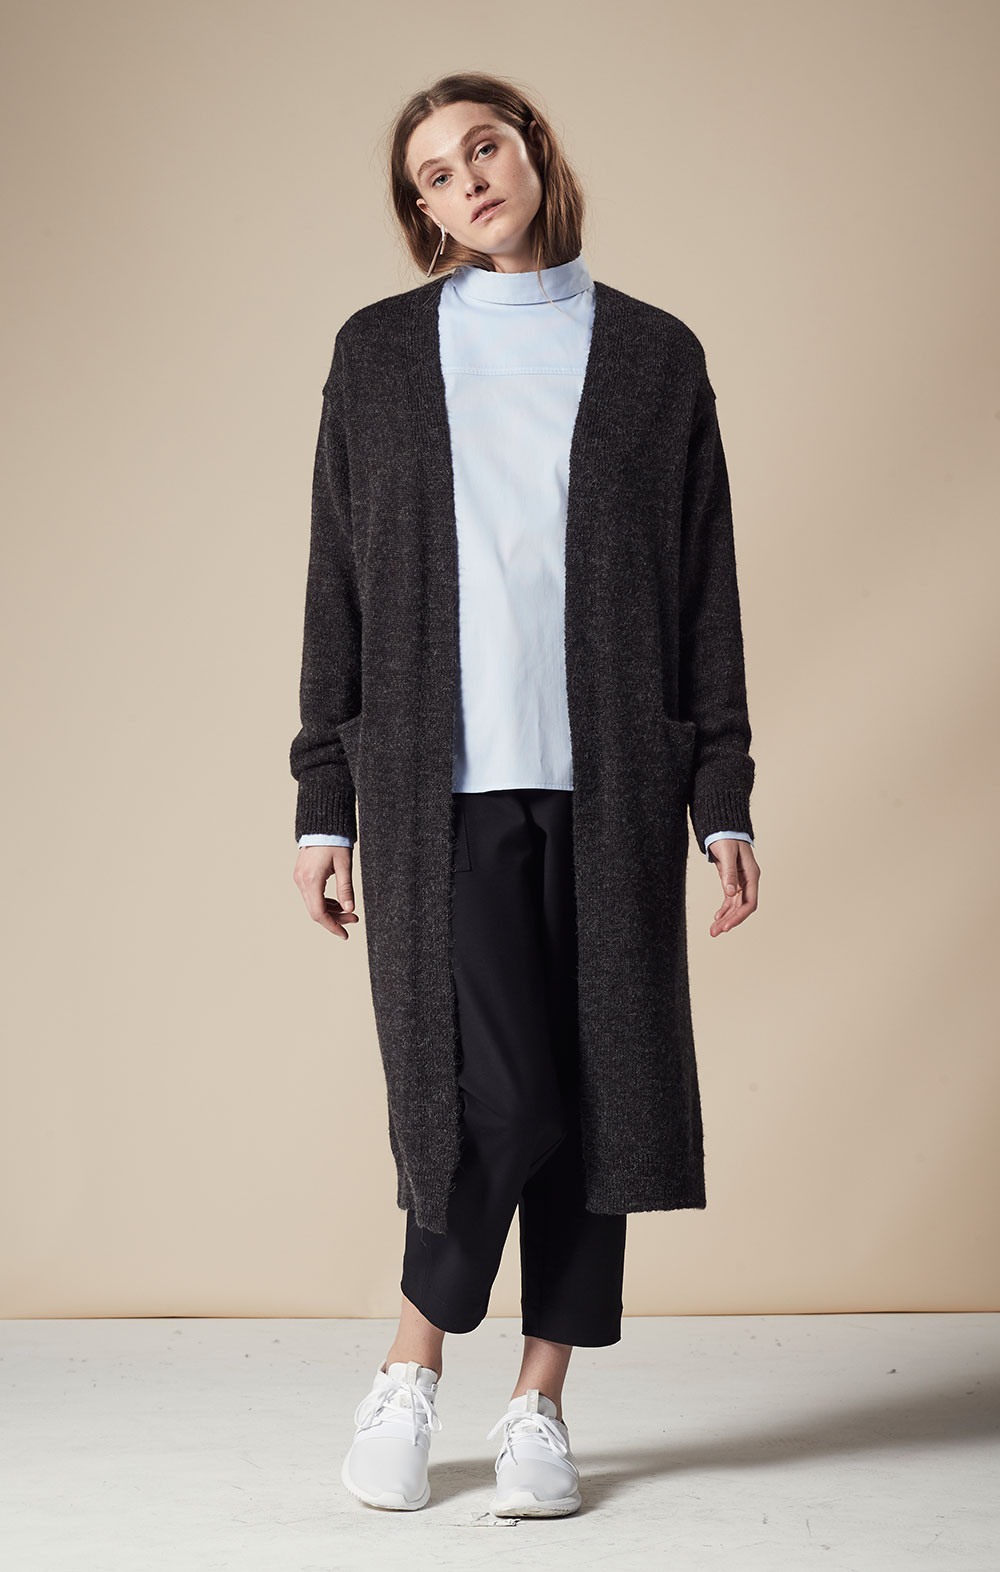 Alpaca-blend Long Cardigan FBK092-CHR Thin Striped Open Back Shirt FBT025-LBL Pocket Detail Cropped Pants FBP030-BLK